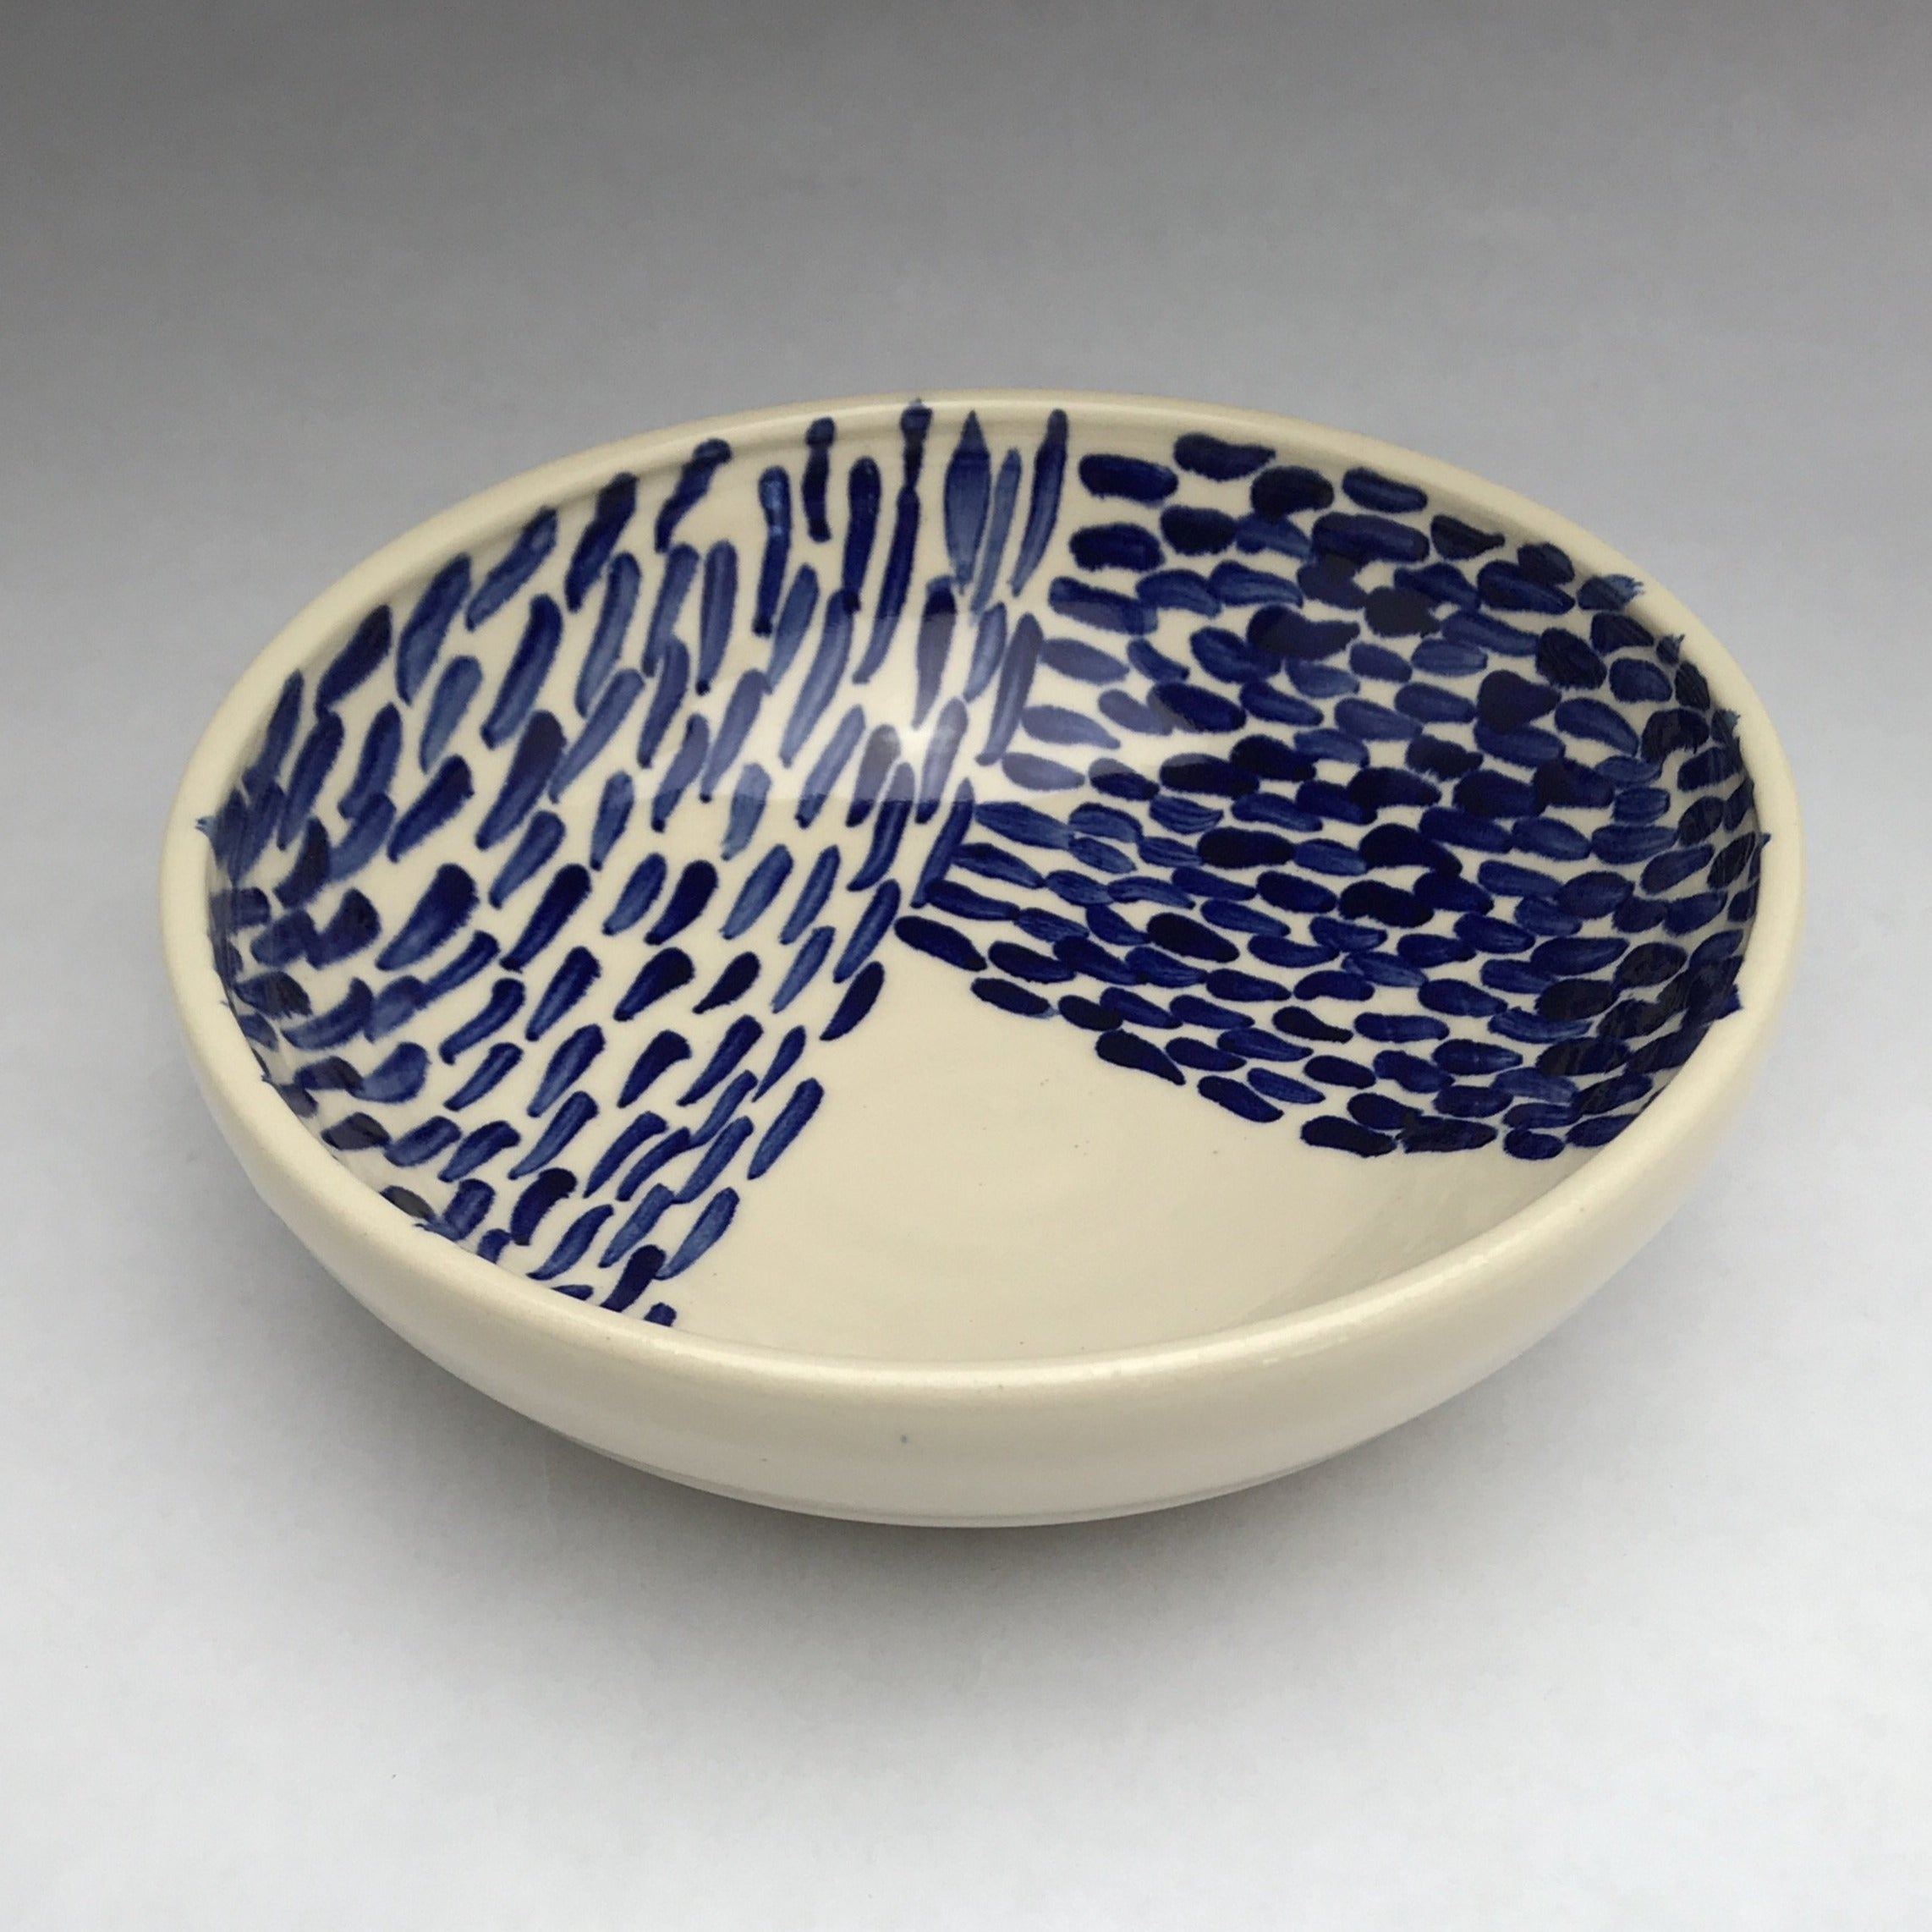 white ceramic bowl with cobalt blue patterns of lines and dots